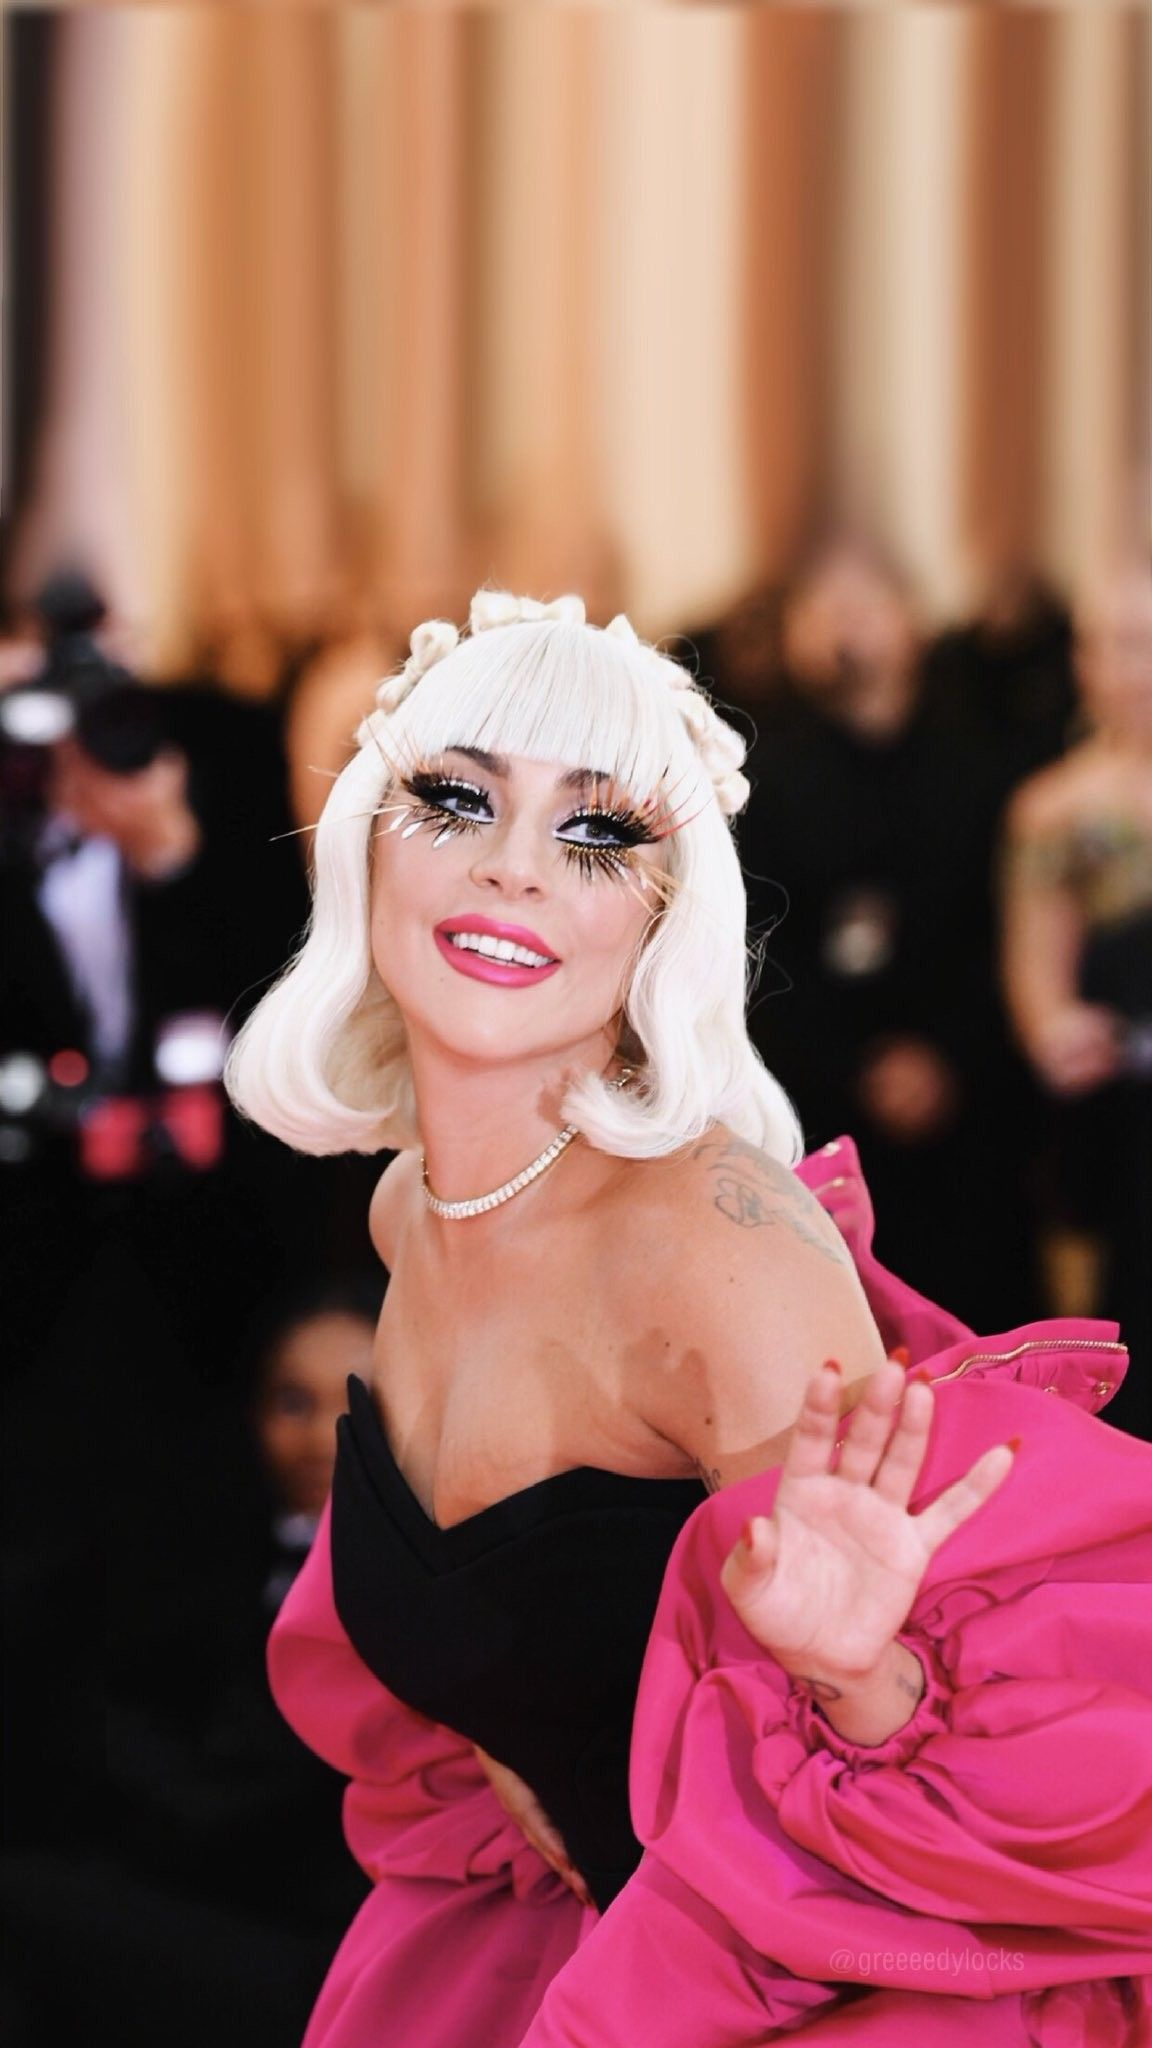 Pin By Gerald Russell On Haus Of Gaga Lady Gaga Pictures Lady Gaga Fashion Lady Gaga Met Gala